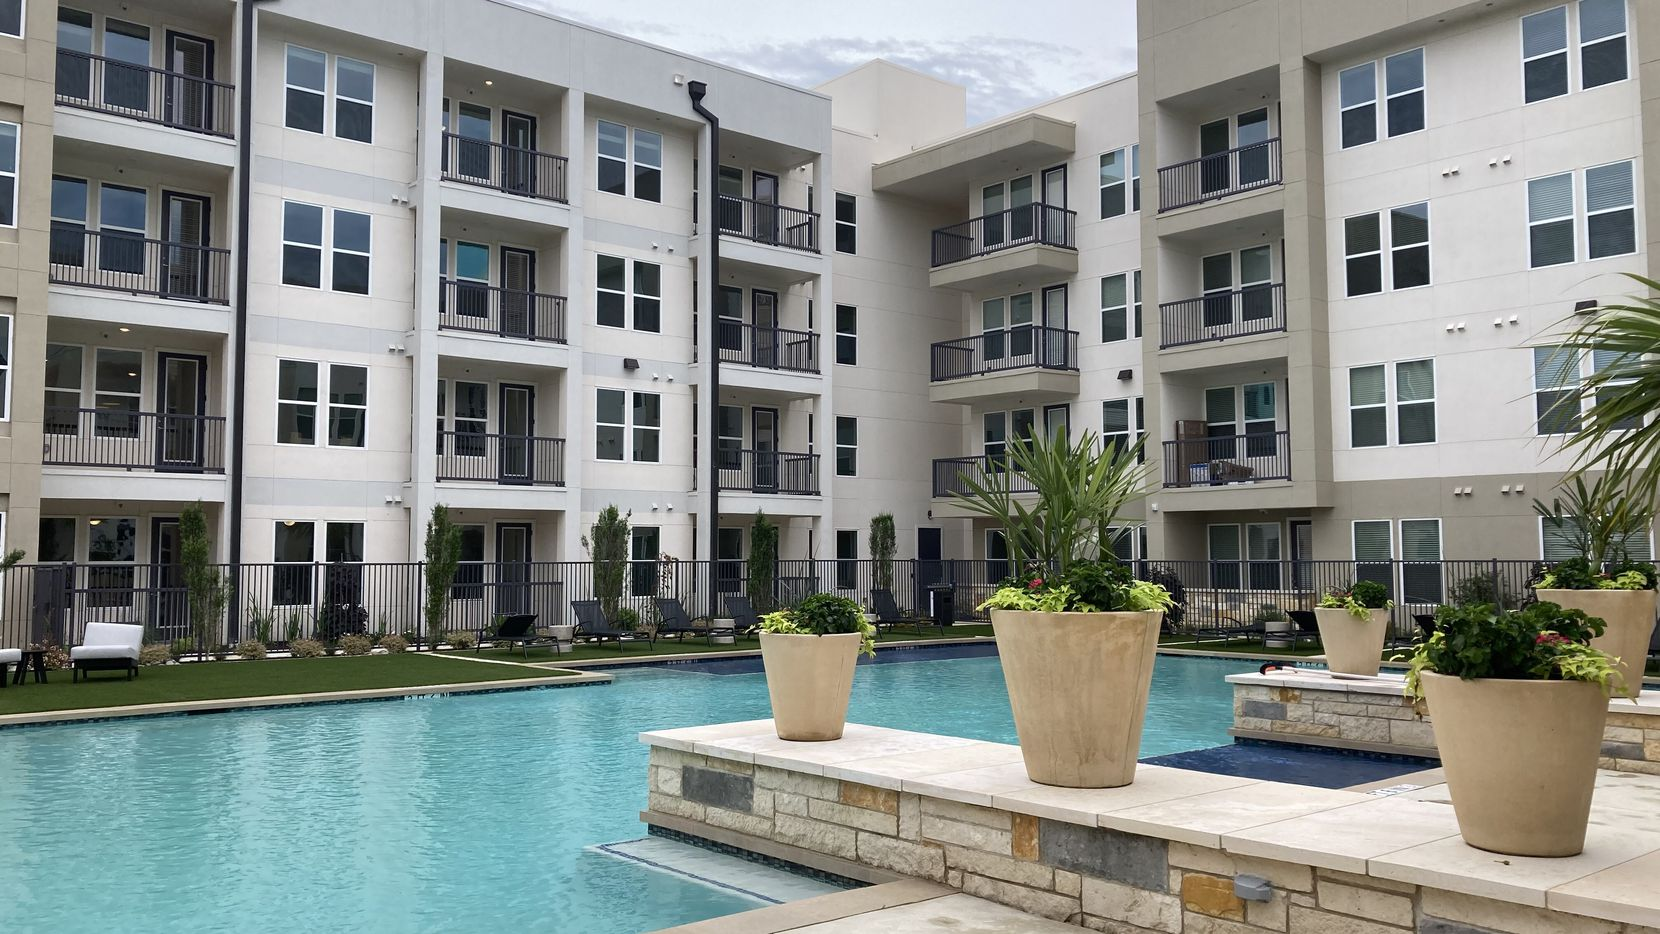 File photo of Carbon Cos. Latitude apartments in Plano. The developer has built almost 16,000 rental units in the last three decades.